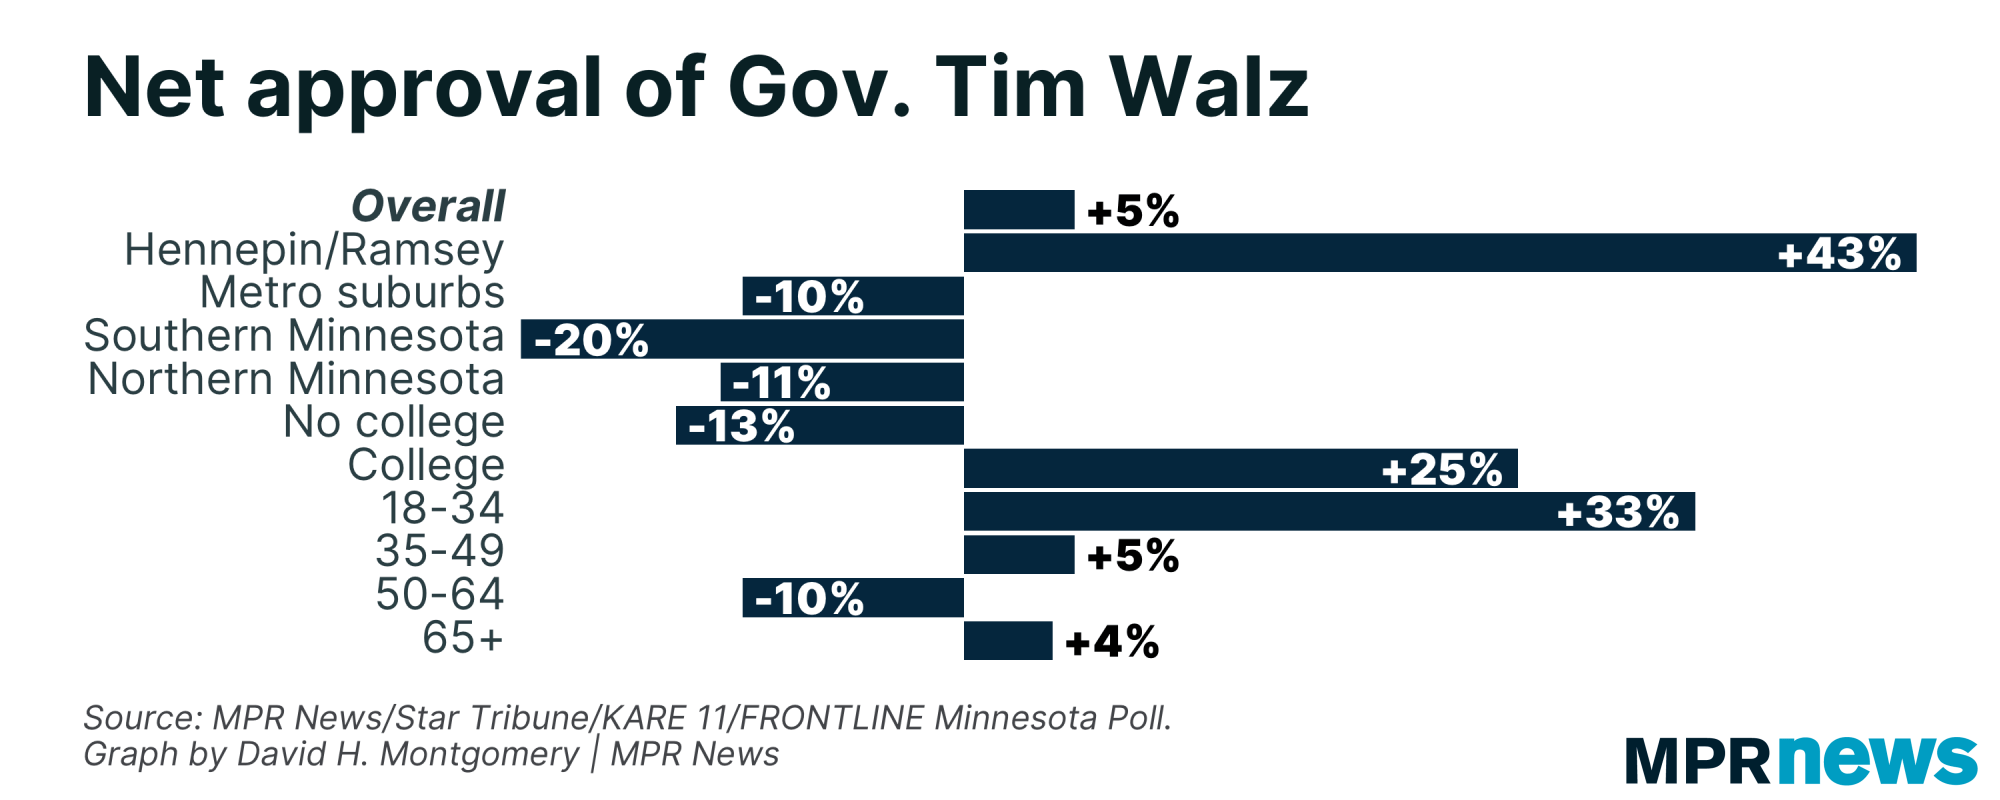 Graph of Minnesota net approval of Tim Walz by demographic